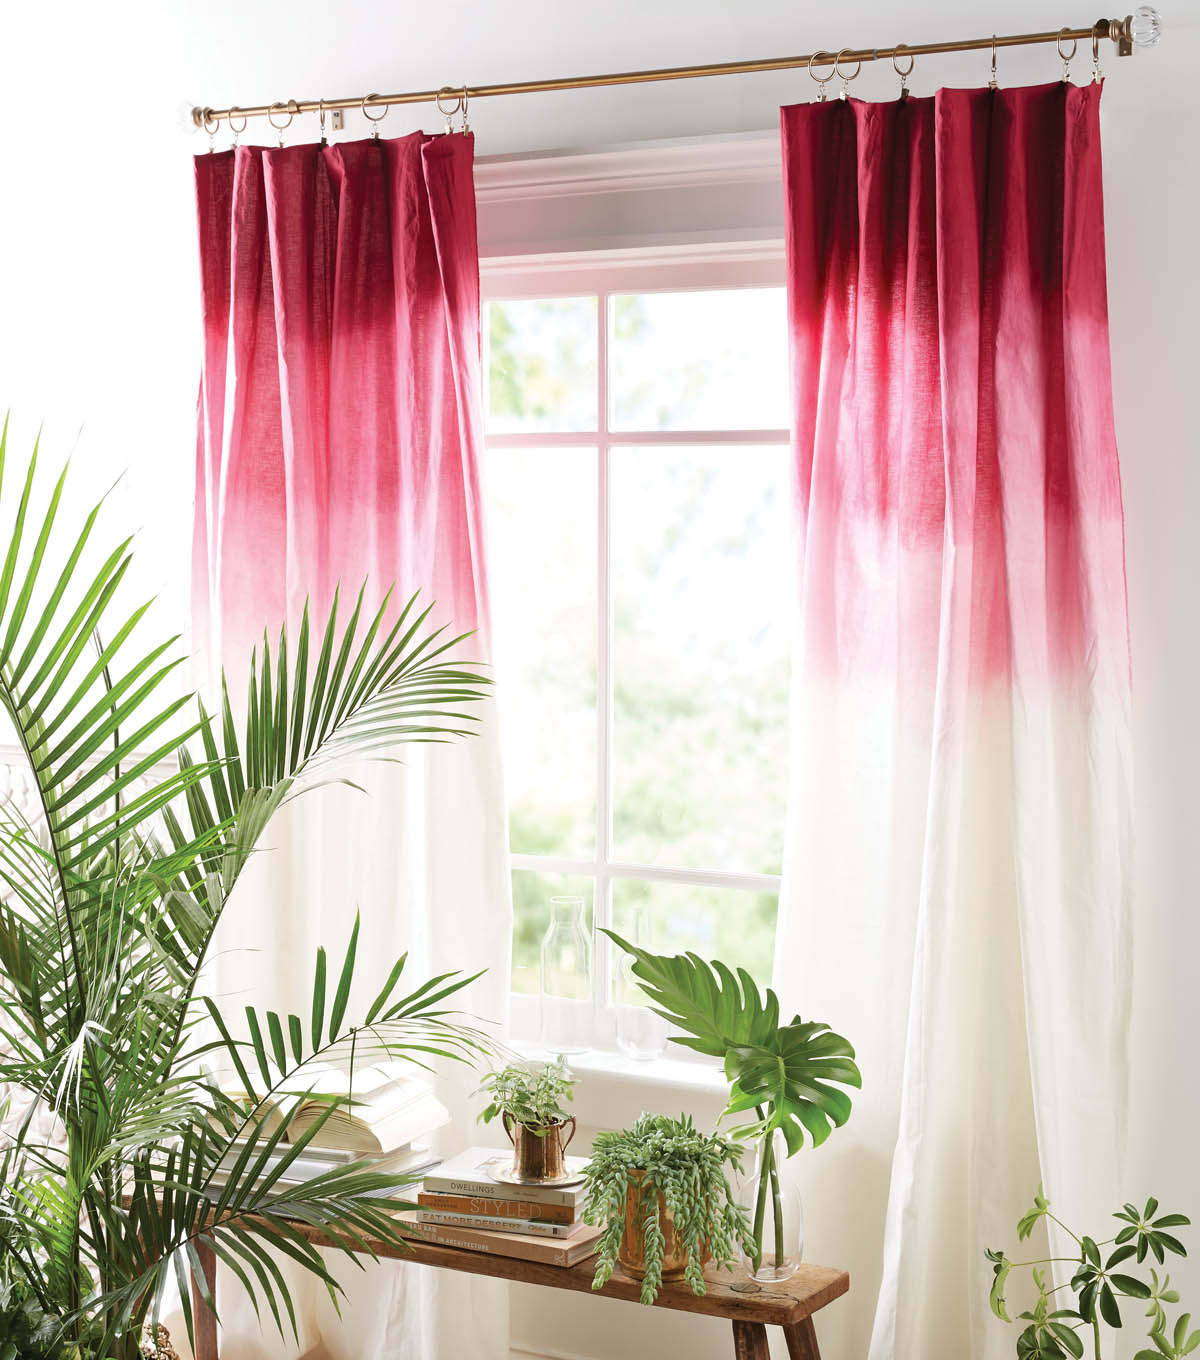 Make Curtains How To Make Ombre Curtains Diy Ombre Curtains Joann